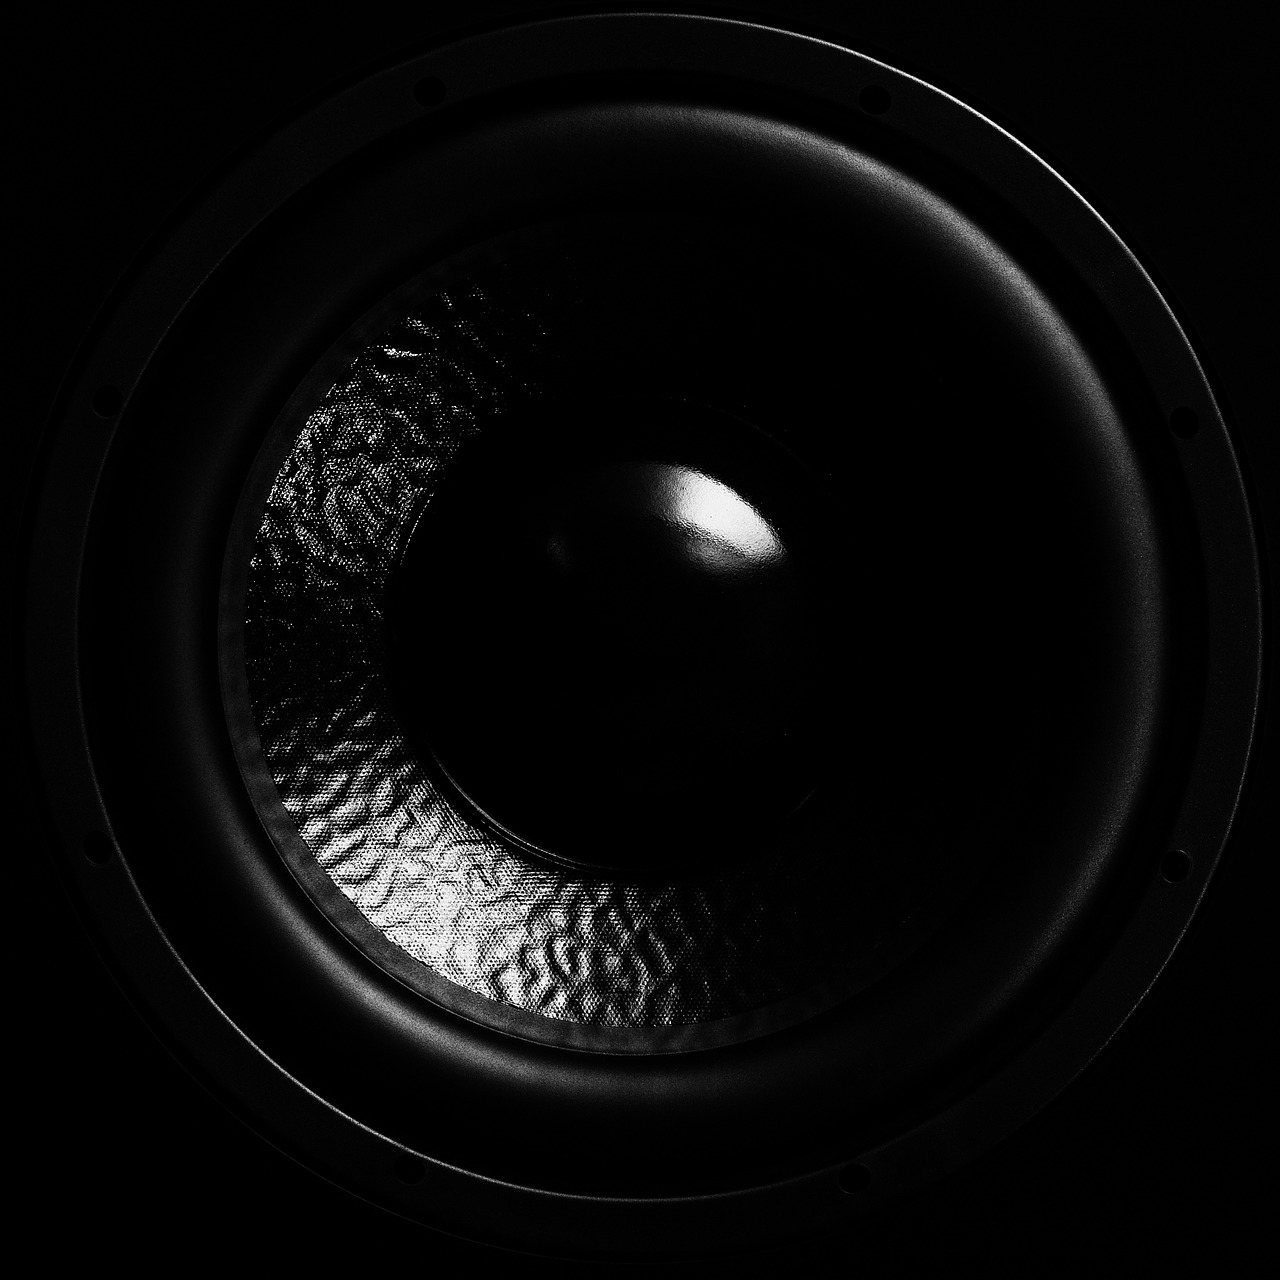 speakers subwoofer bass free photo